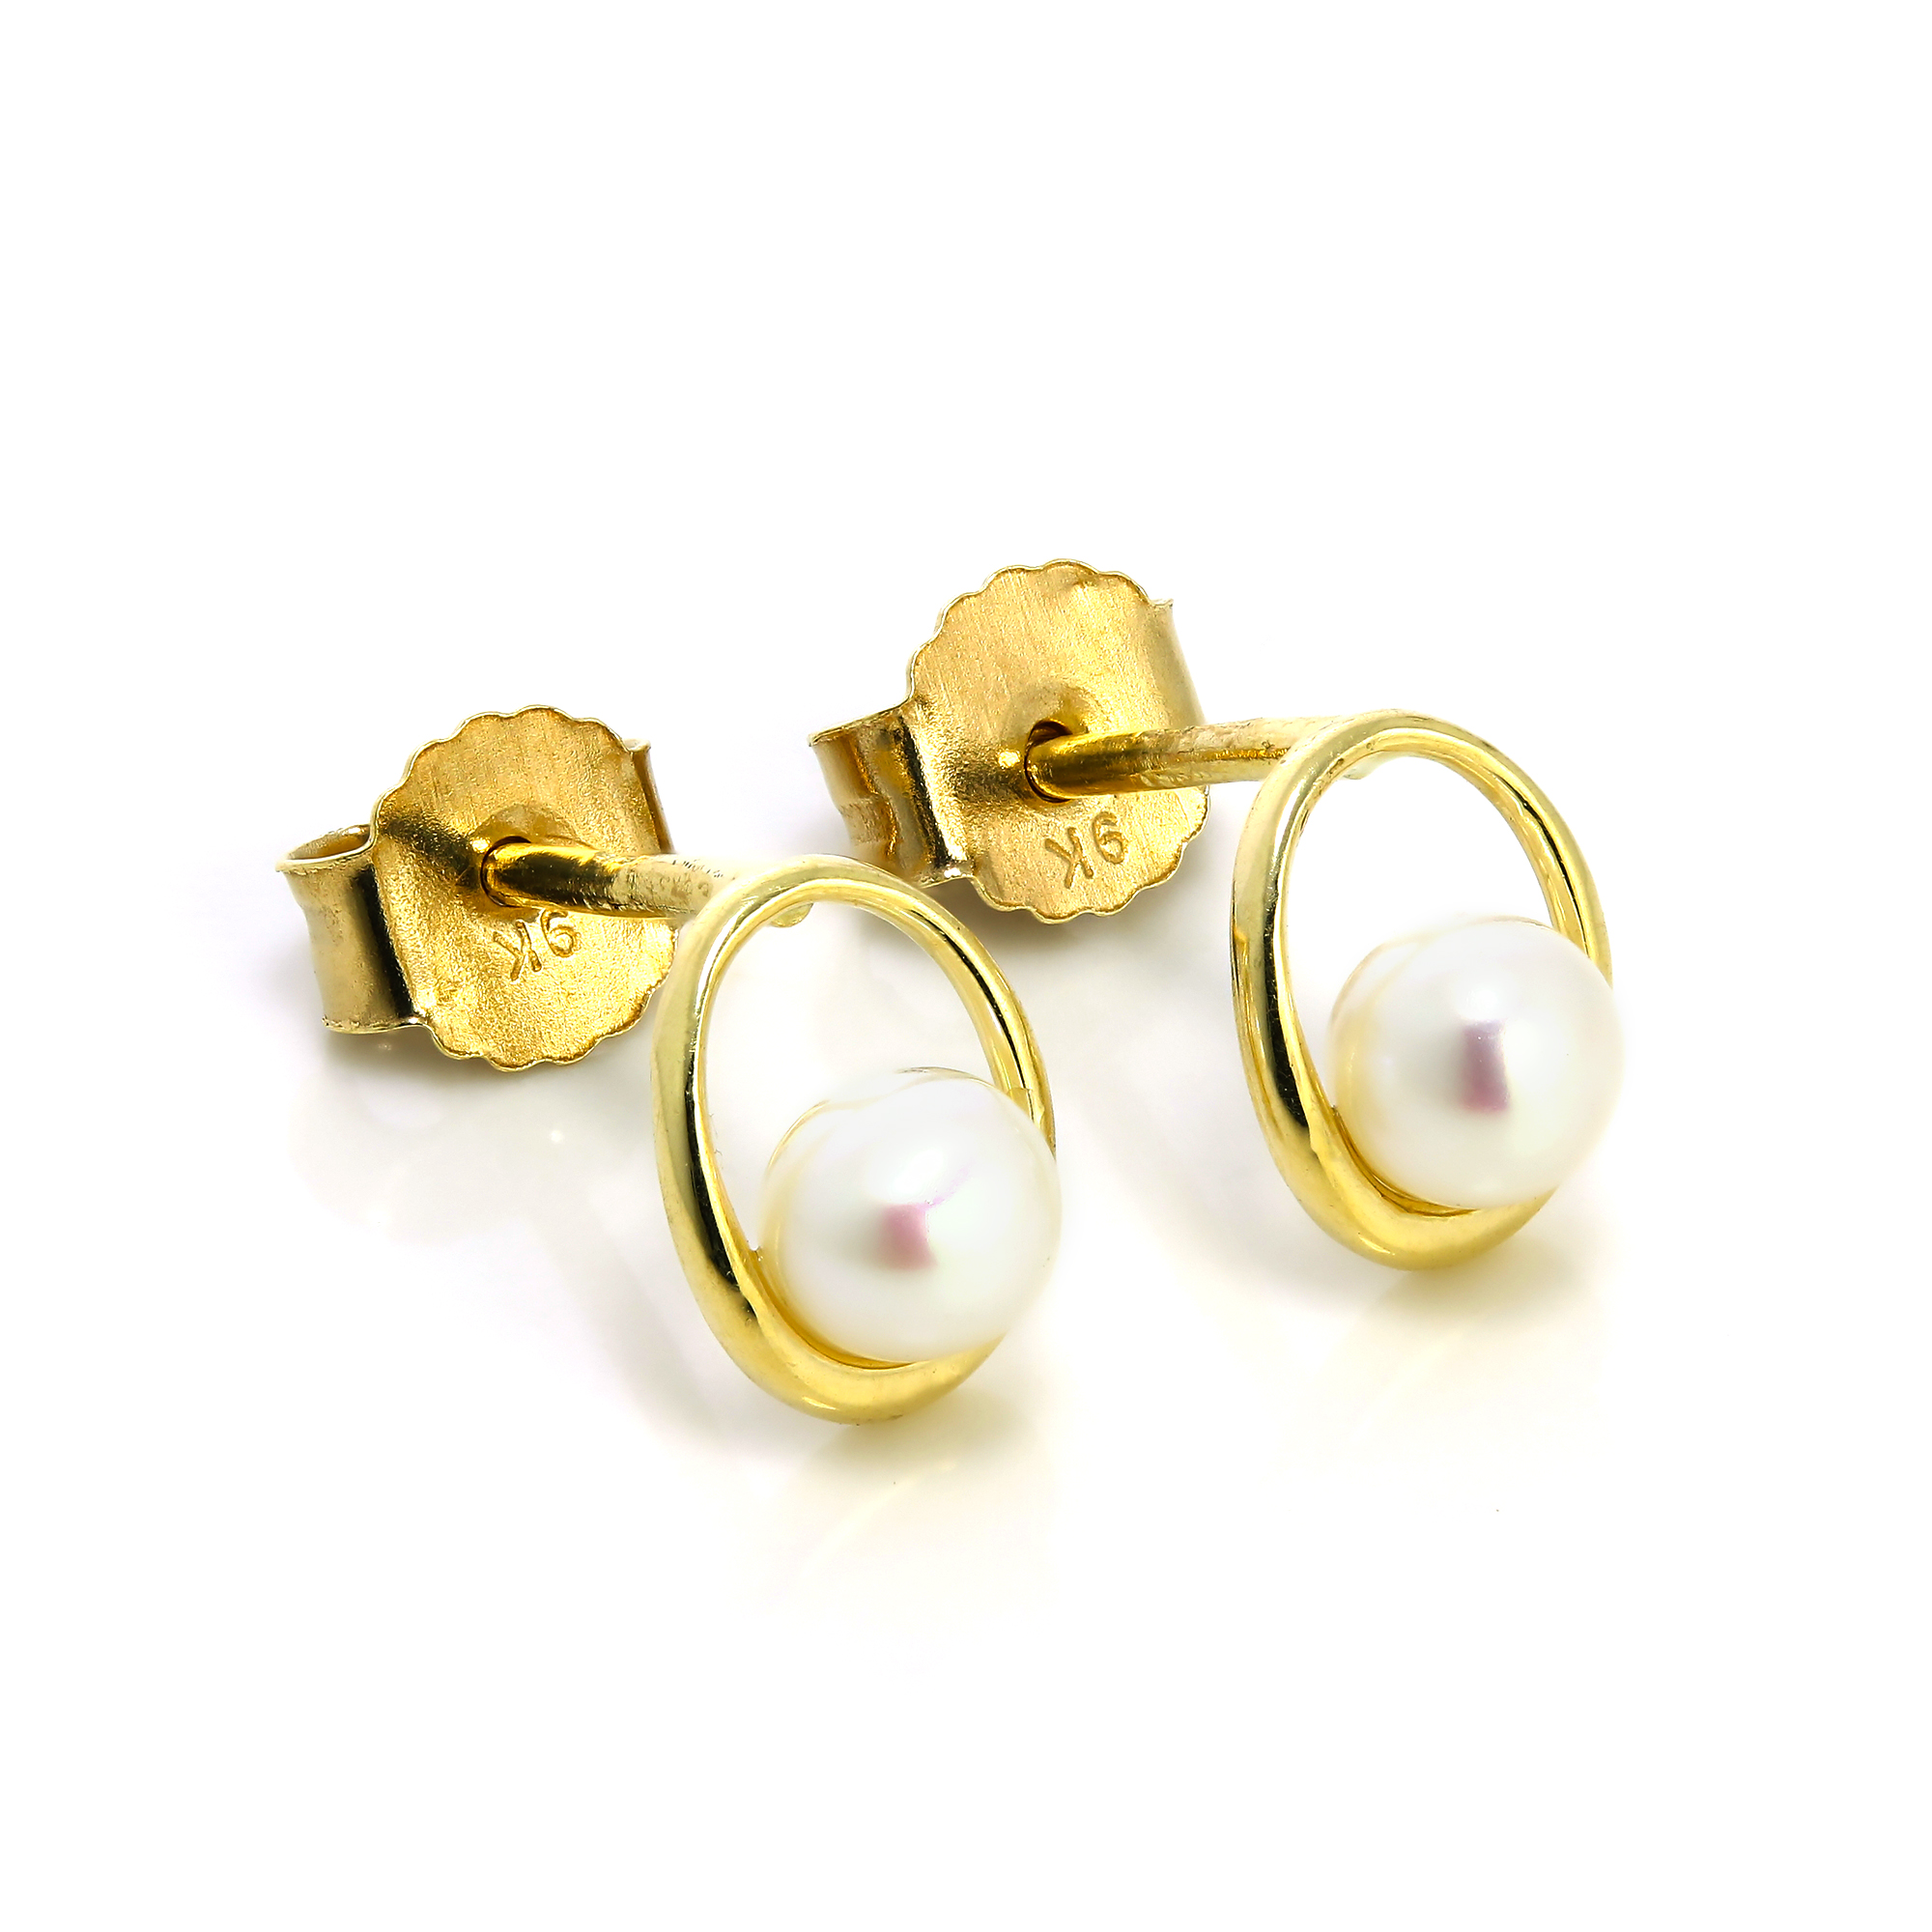 stud earrings gold and ferdinandsen jewelry pink view conch lyst shell annette pearl fullscreen